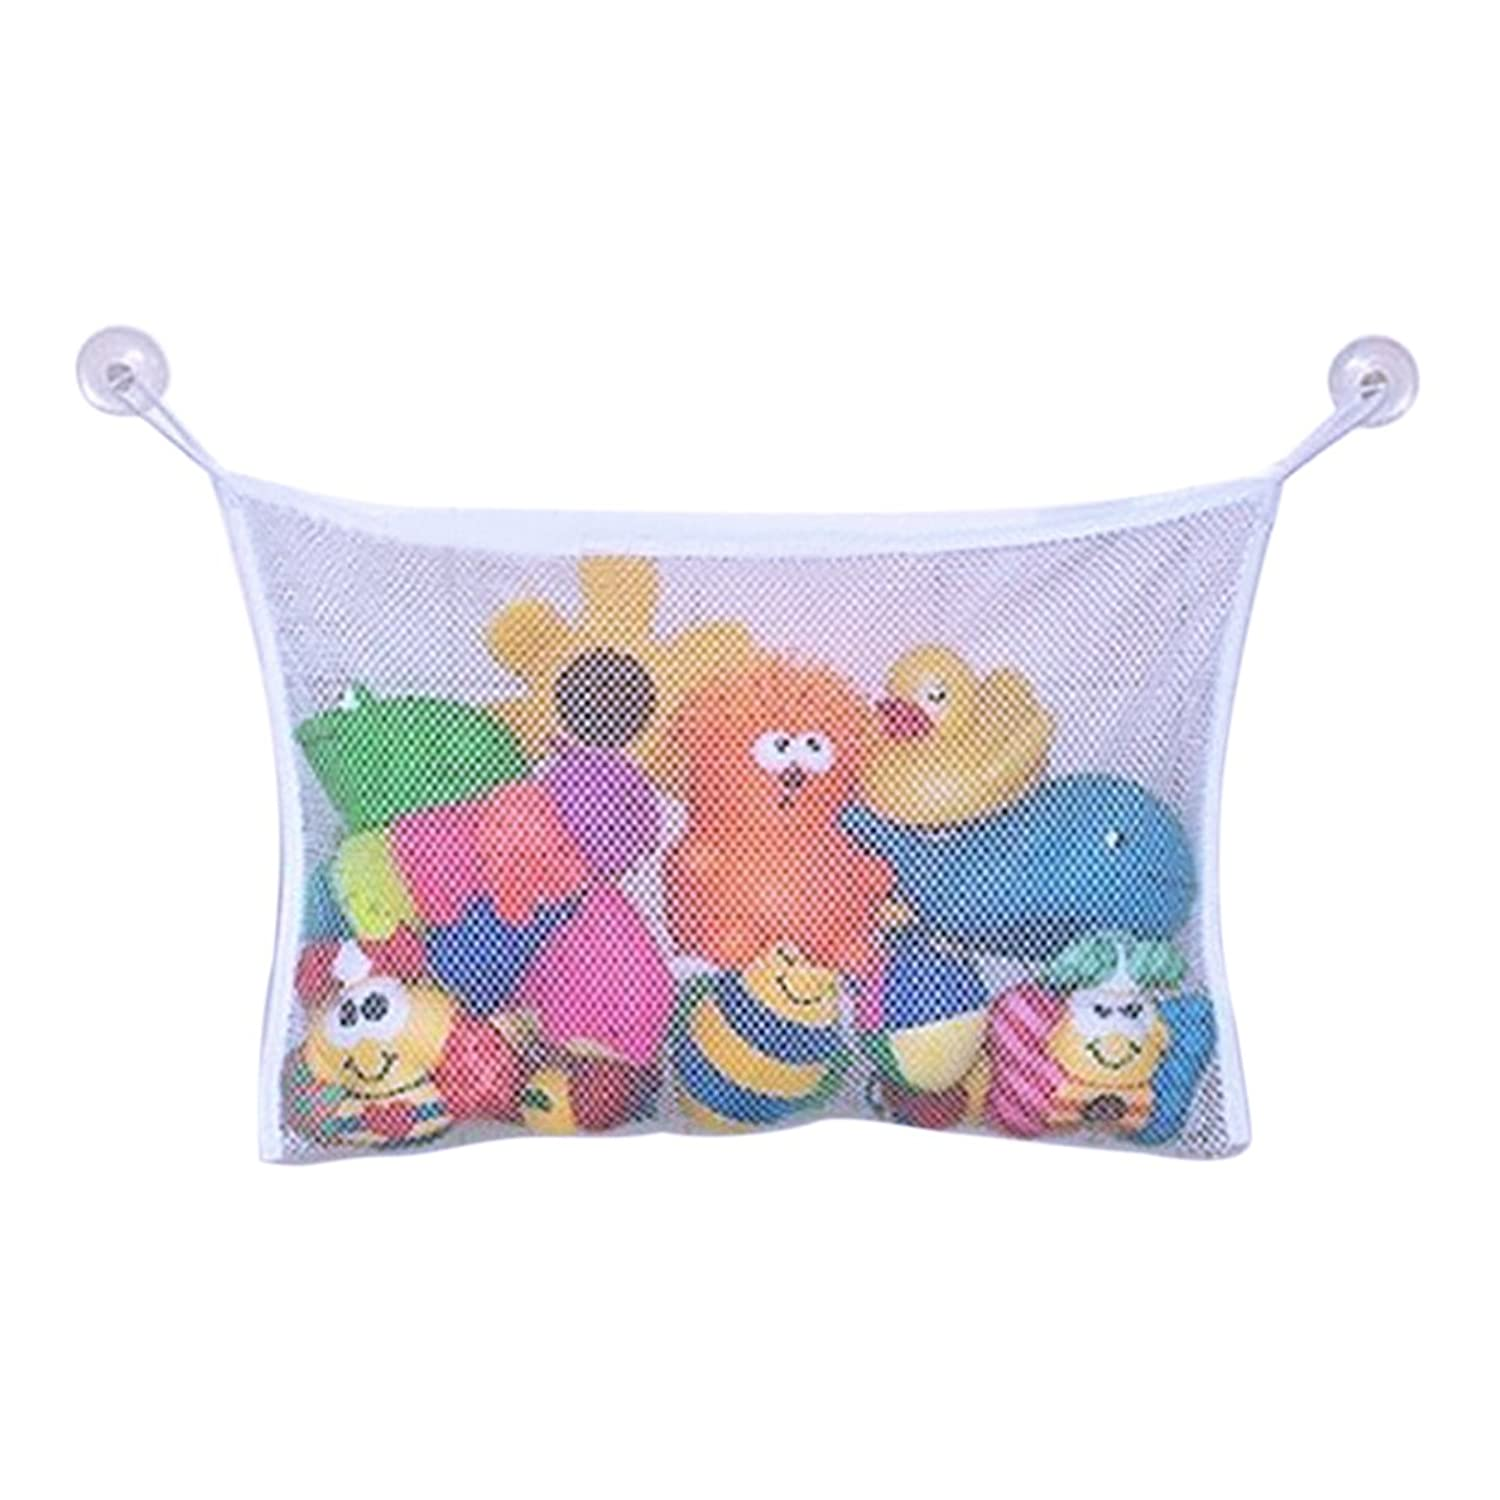 Evelin LEE Baby Bath Time Toy Organizer Mesh Net Hanging Bag With Hooks Holder by Evelin LEE